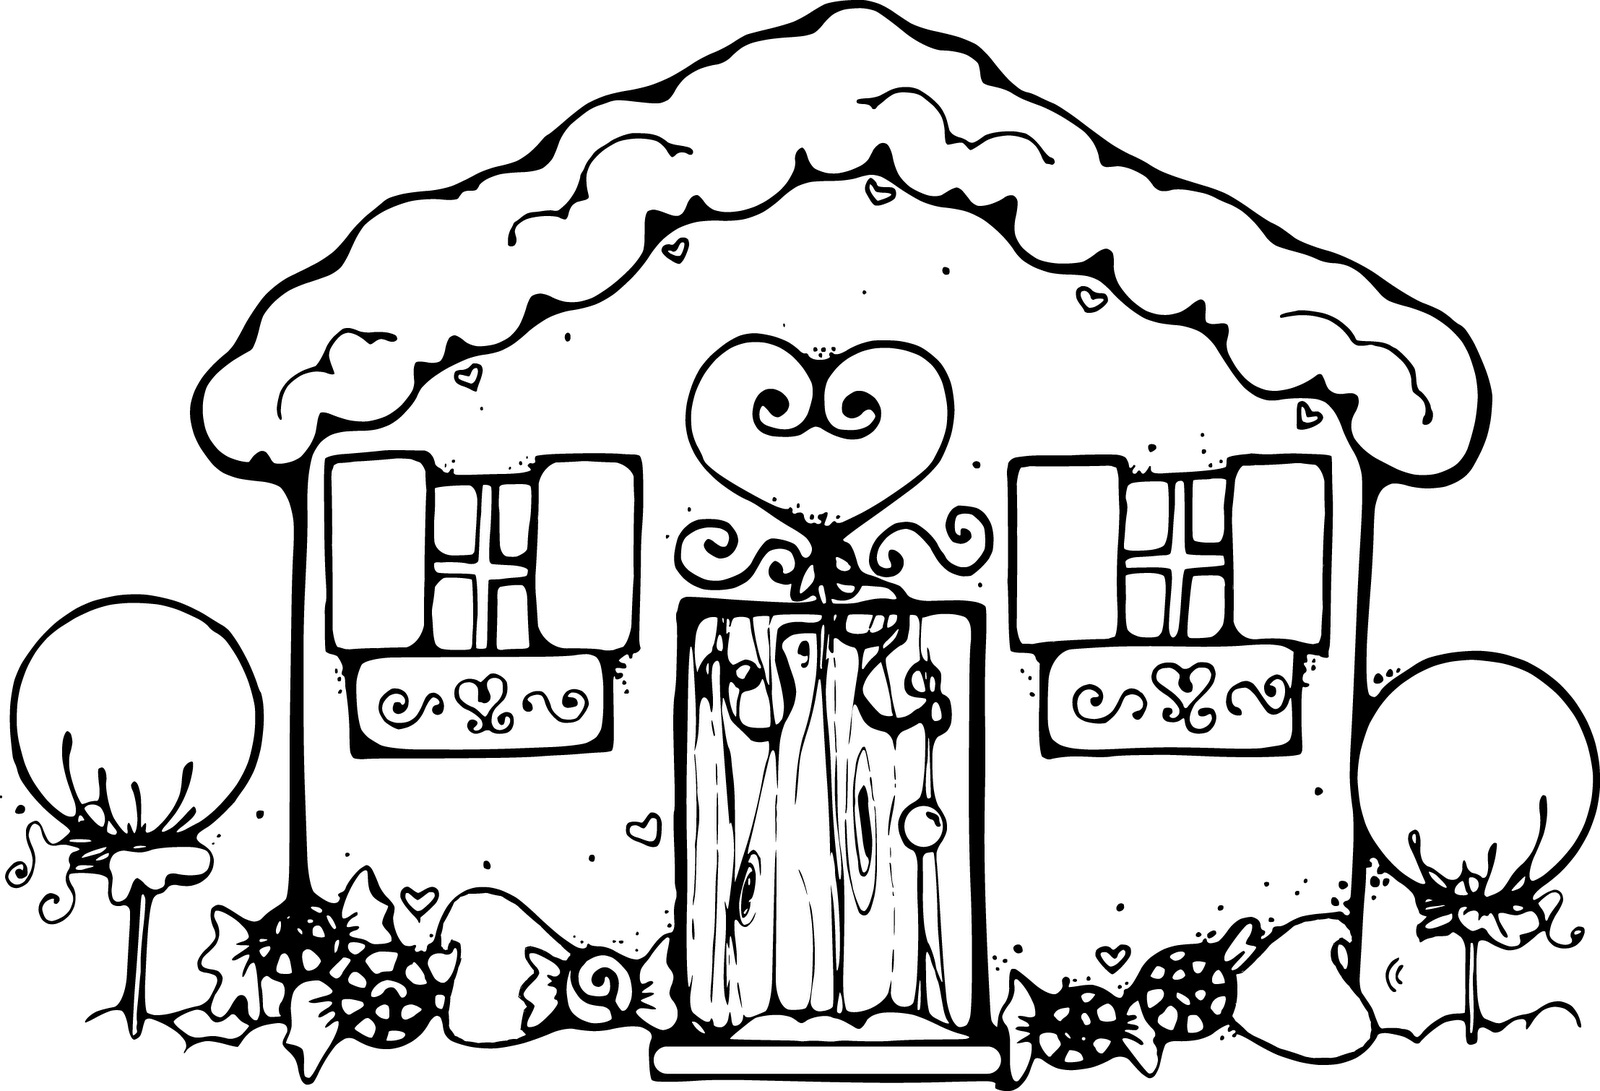 White House coloring page | Free Printable Coloring Pages | 1091x1600